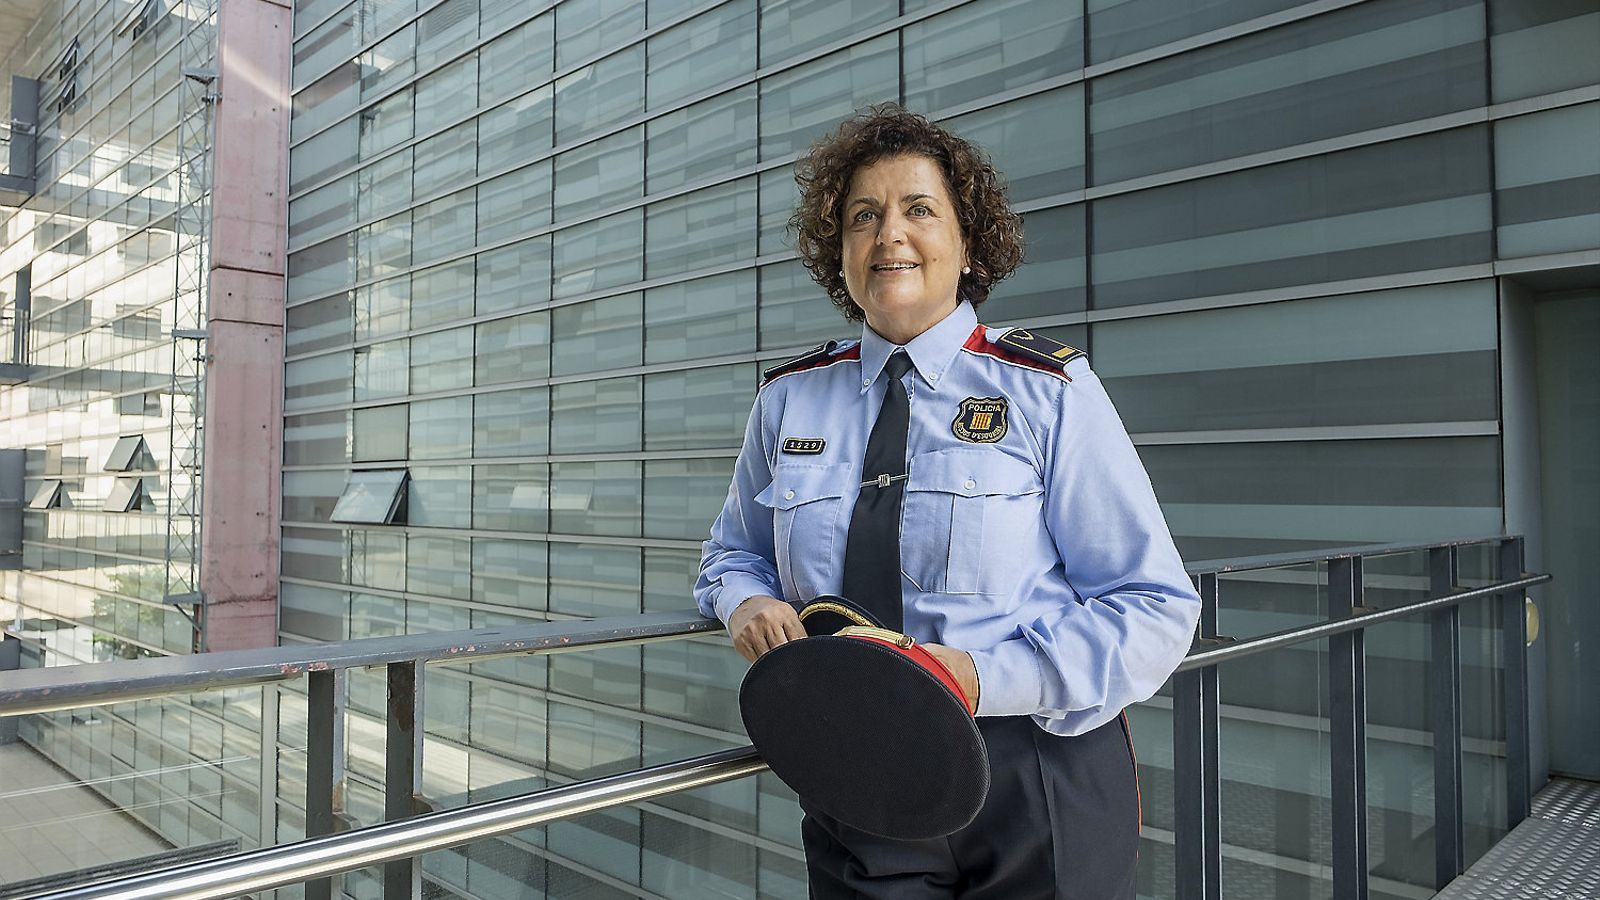 Conciliation and access tests, challenges for equality in the Mossos